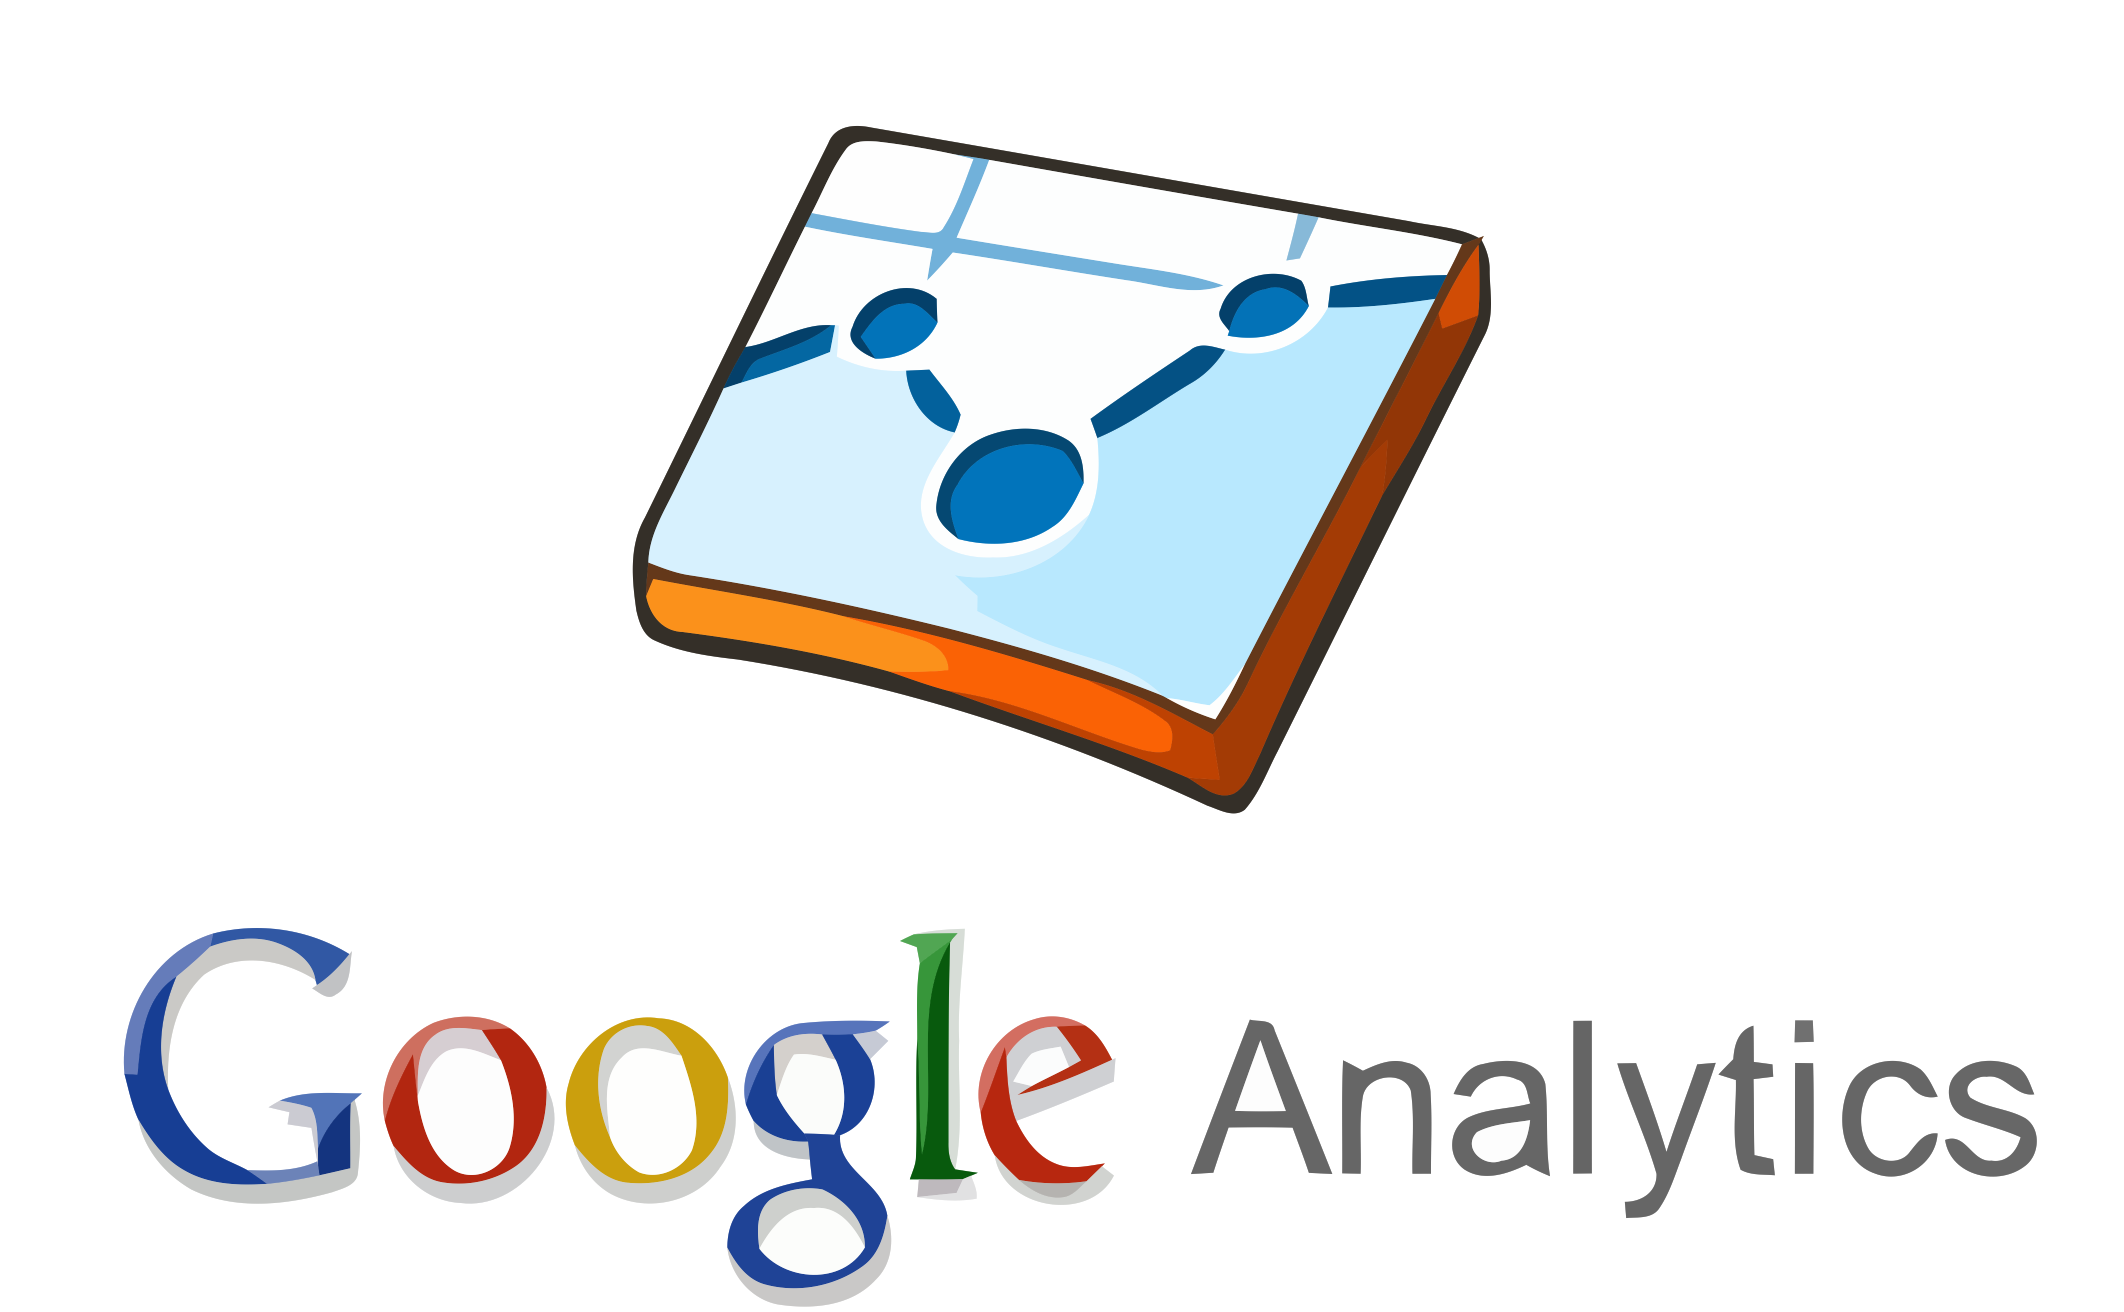 How to analyse data with Google Analytics